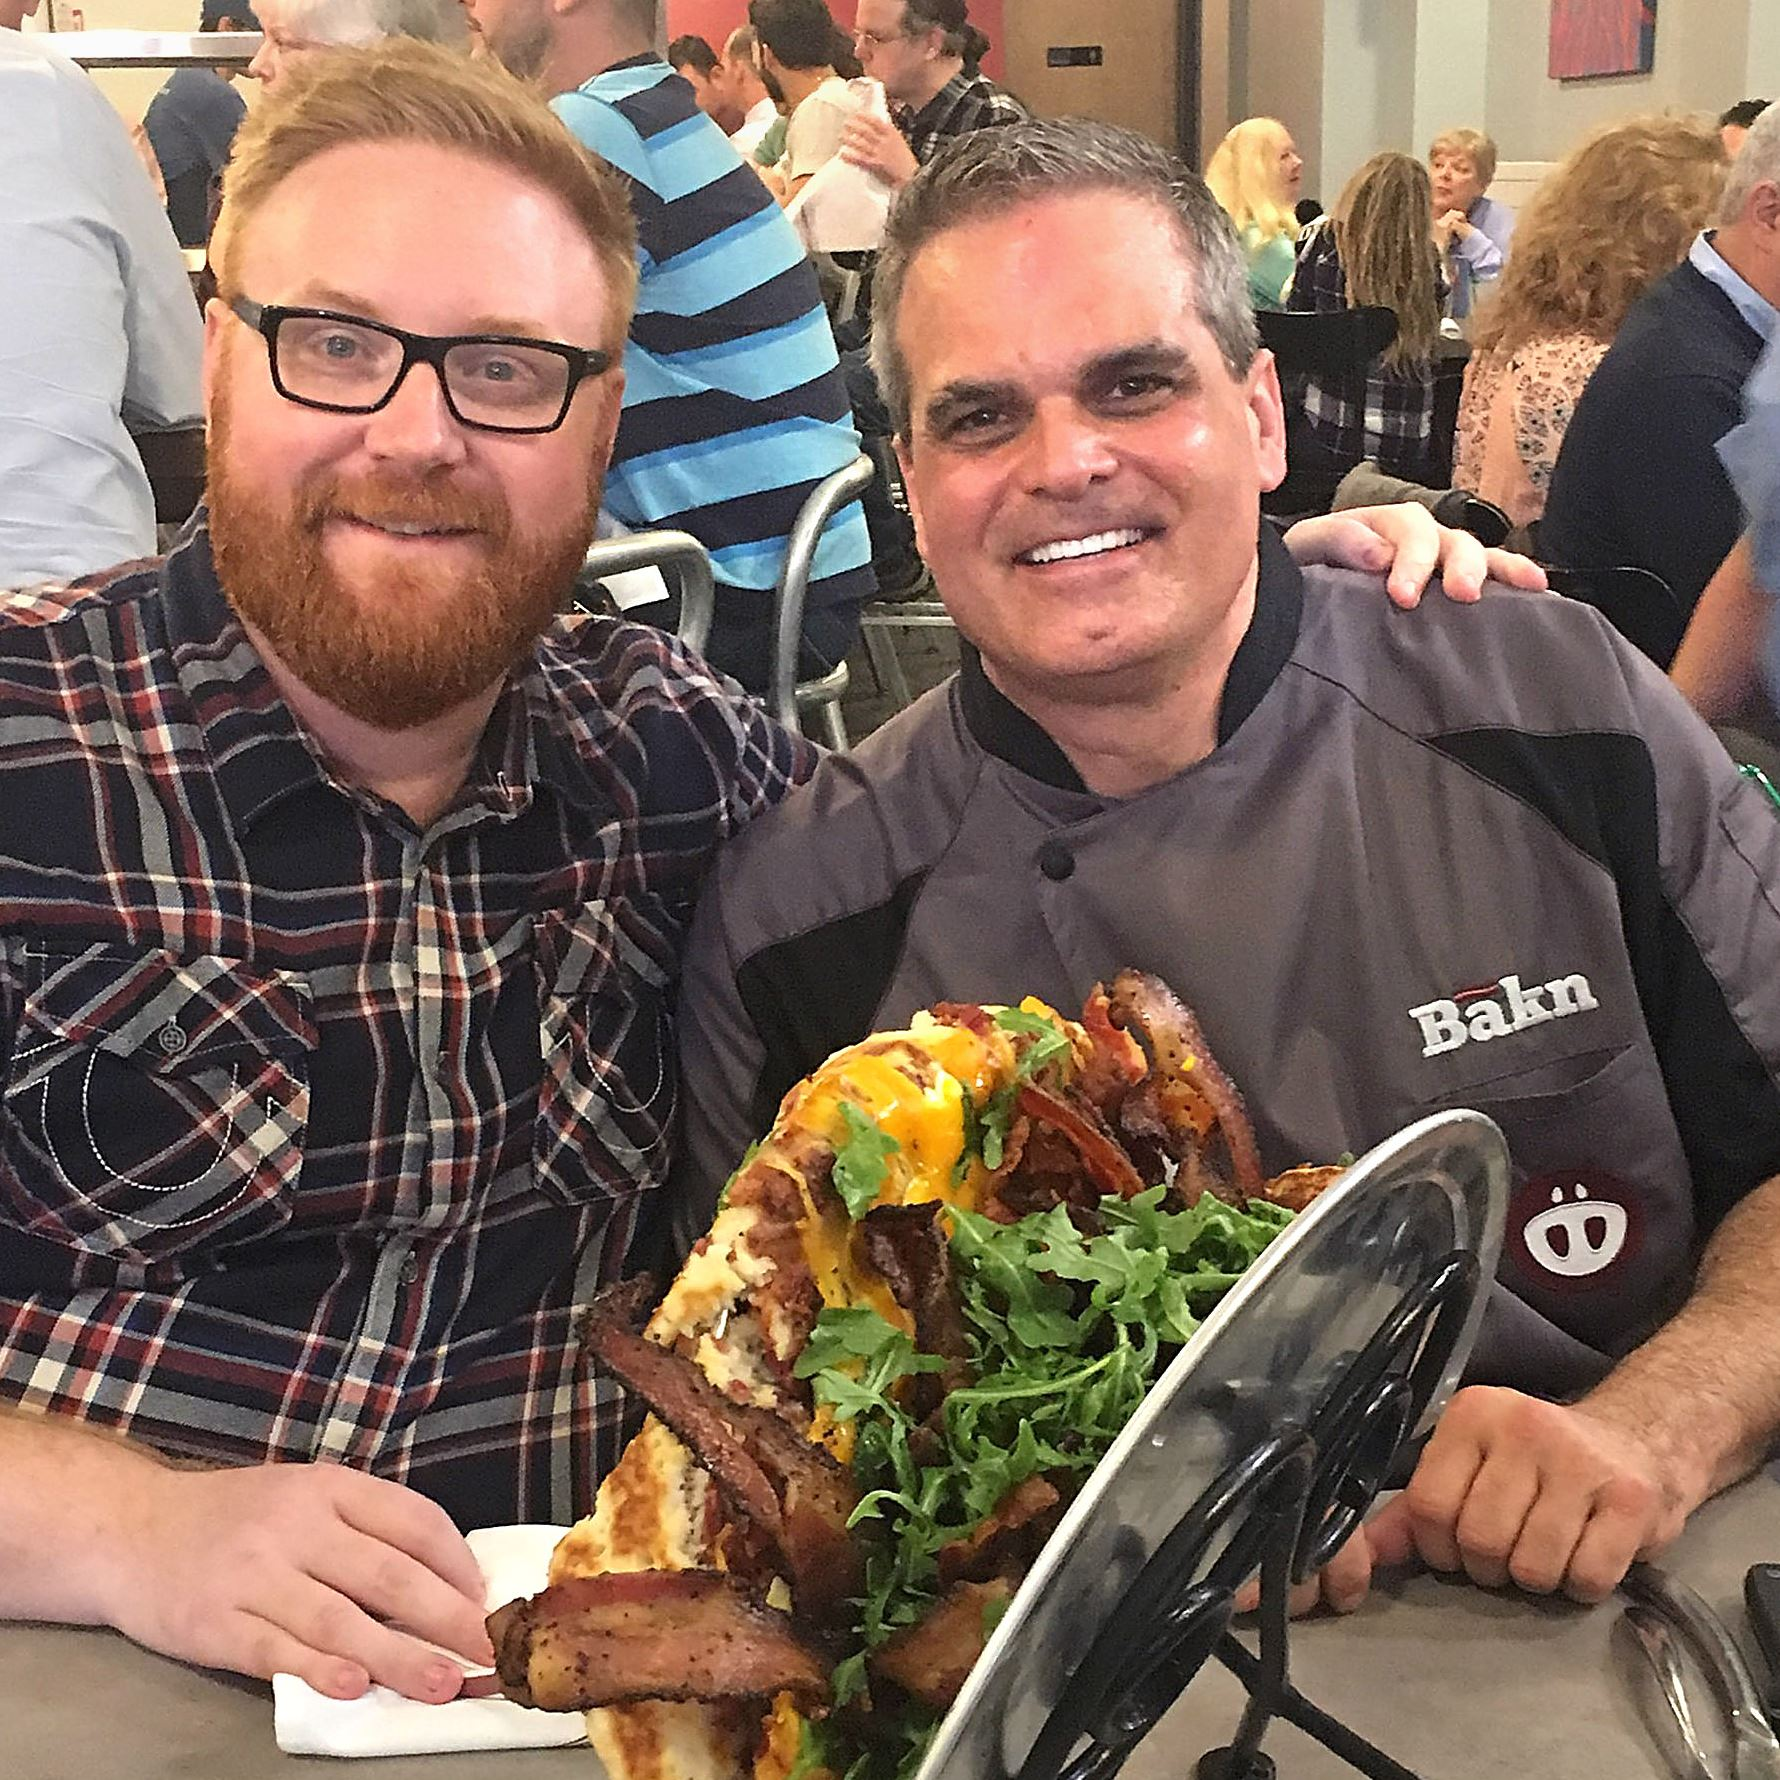 """ginormous bakn Josh Denny, host of Food Network's """"Ginormous Food,"""" with Randy Tozzie, chef and co-owner of Bakn in Carnegie, and a 20-inch taco called Bakn Quake."""